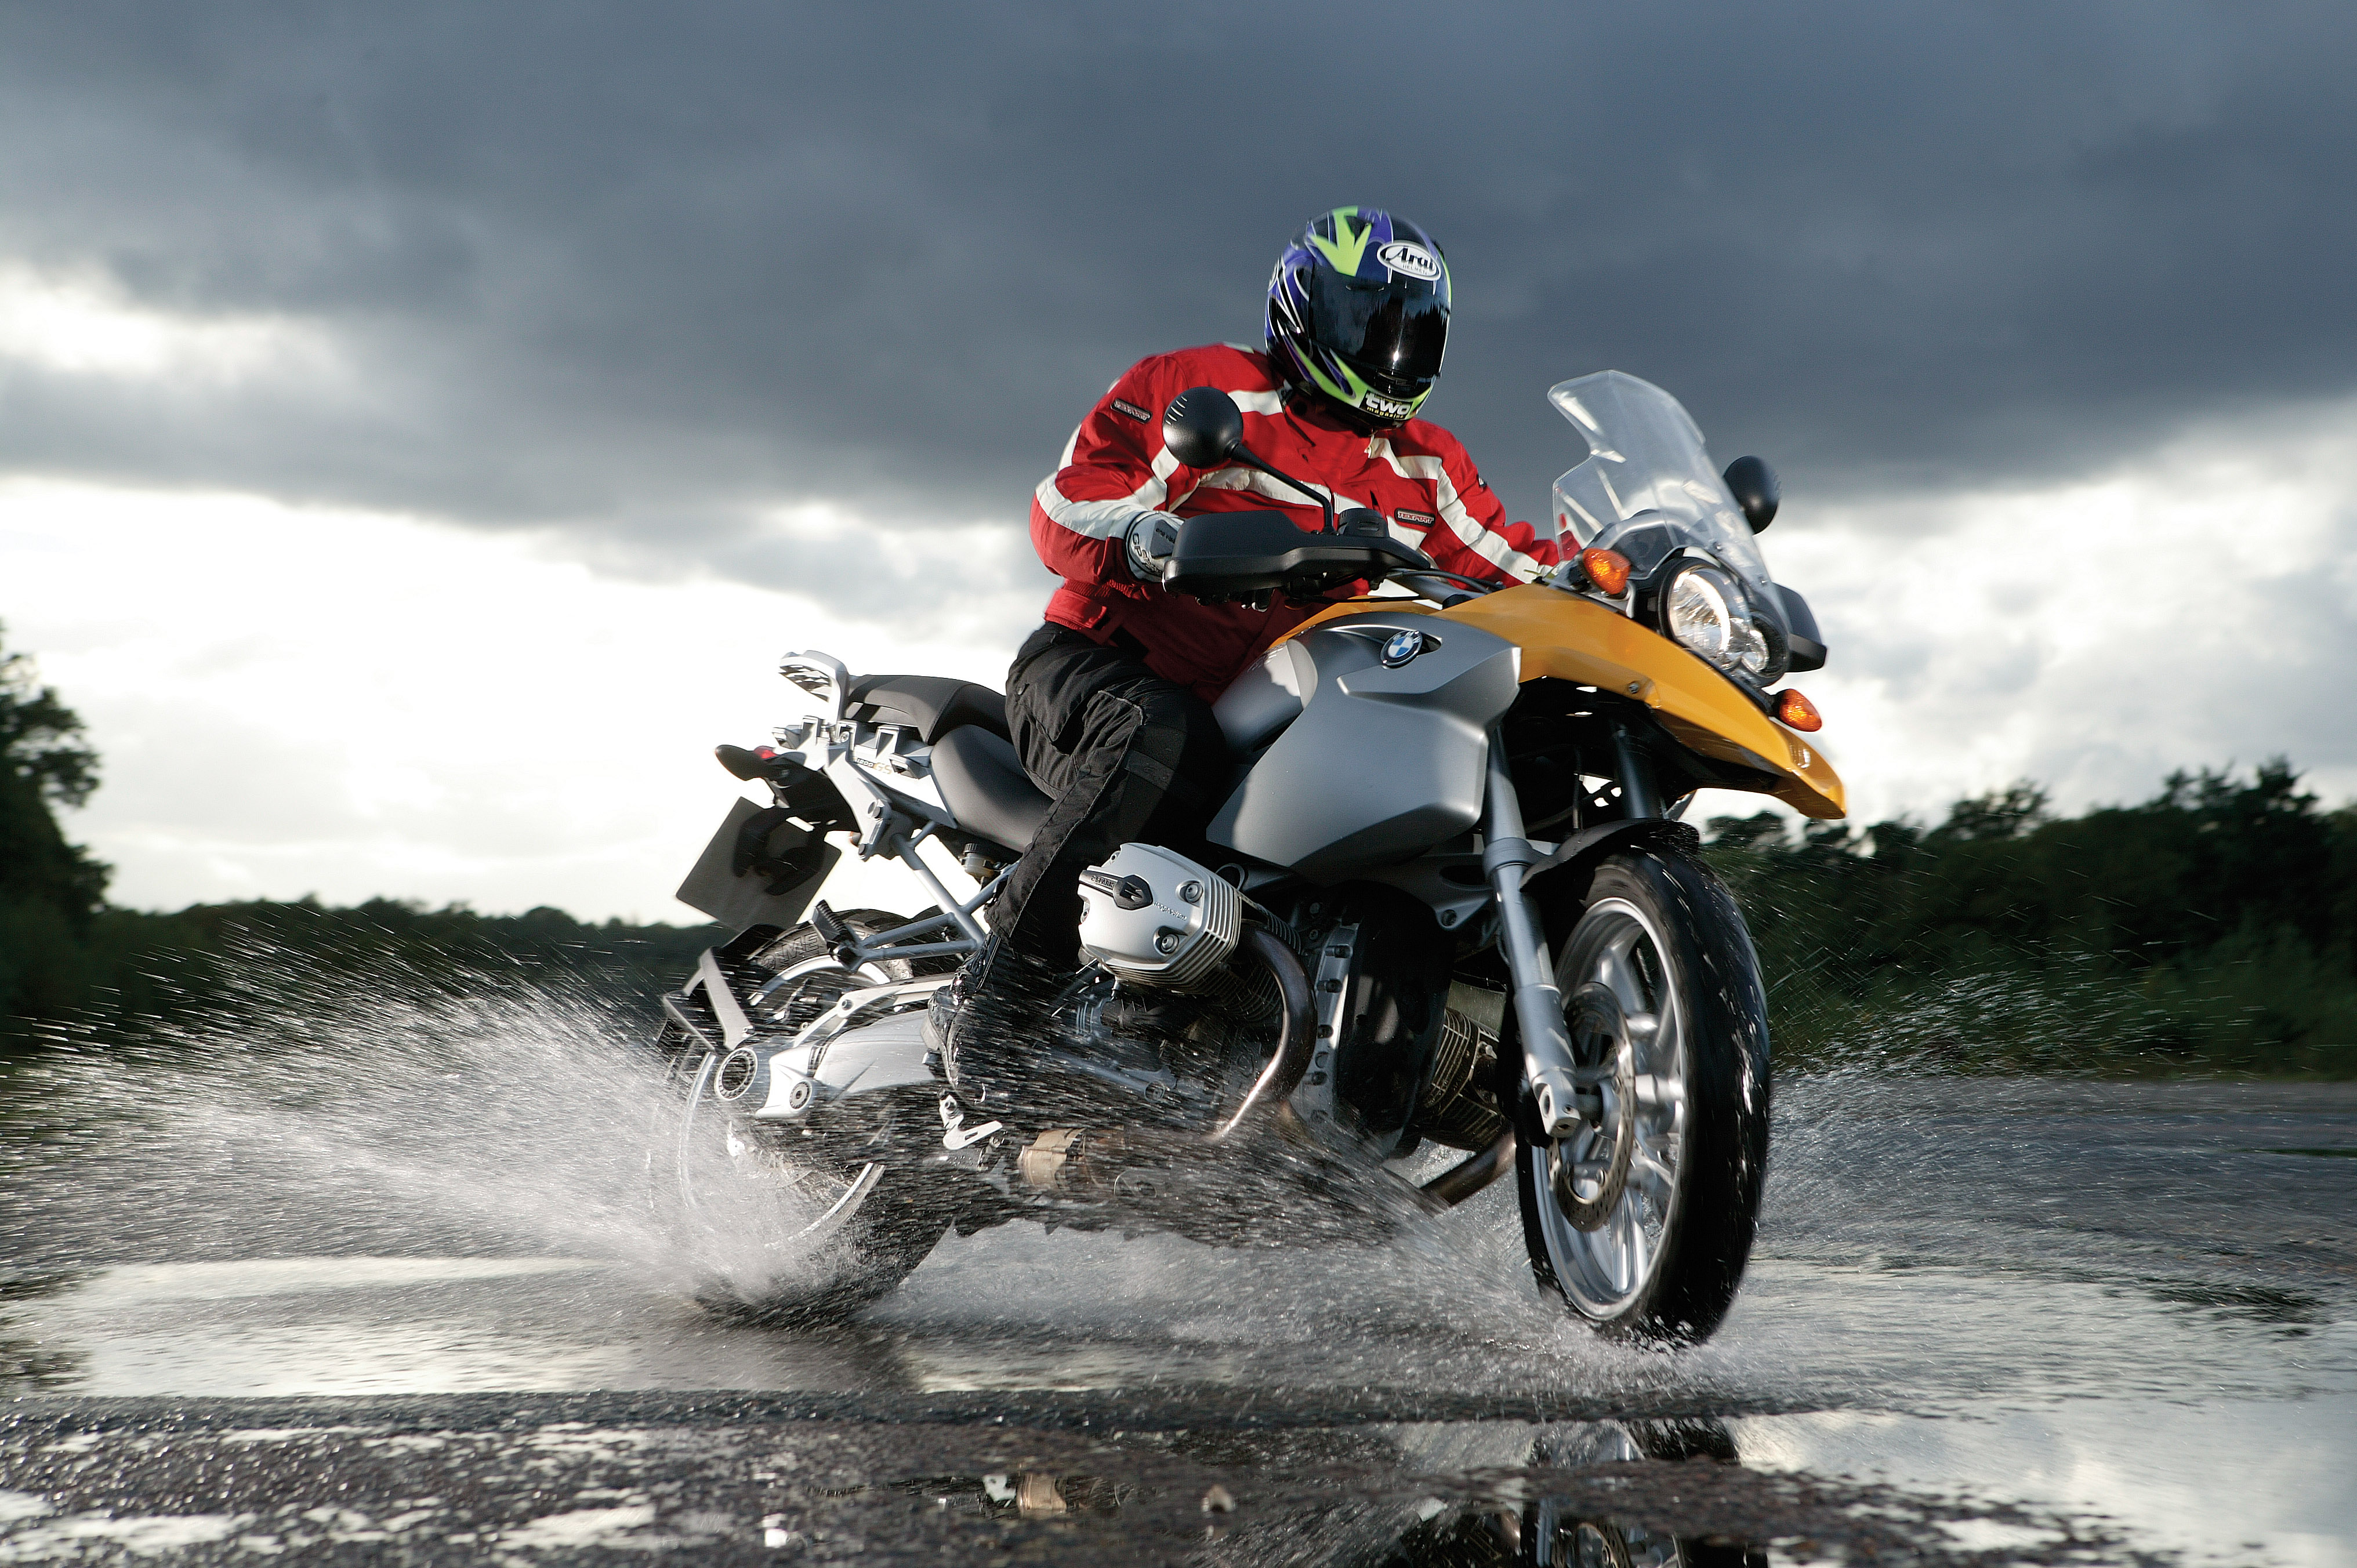 Wet weather motorcycle riding tips | Visordown